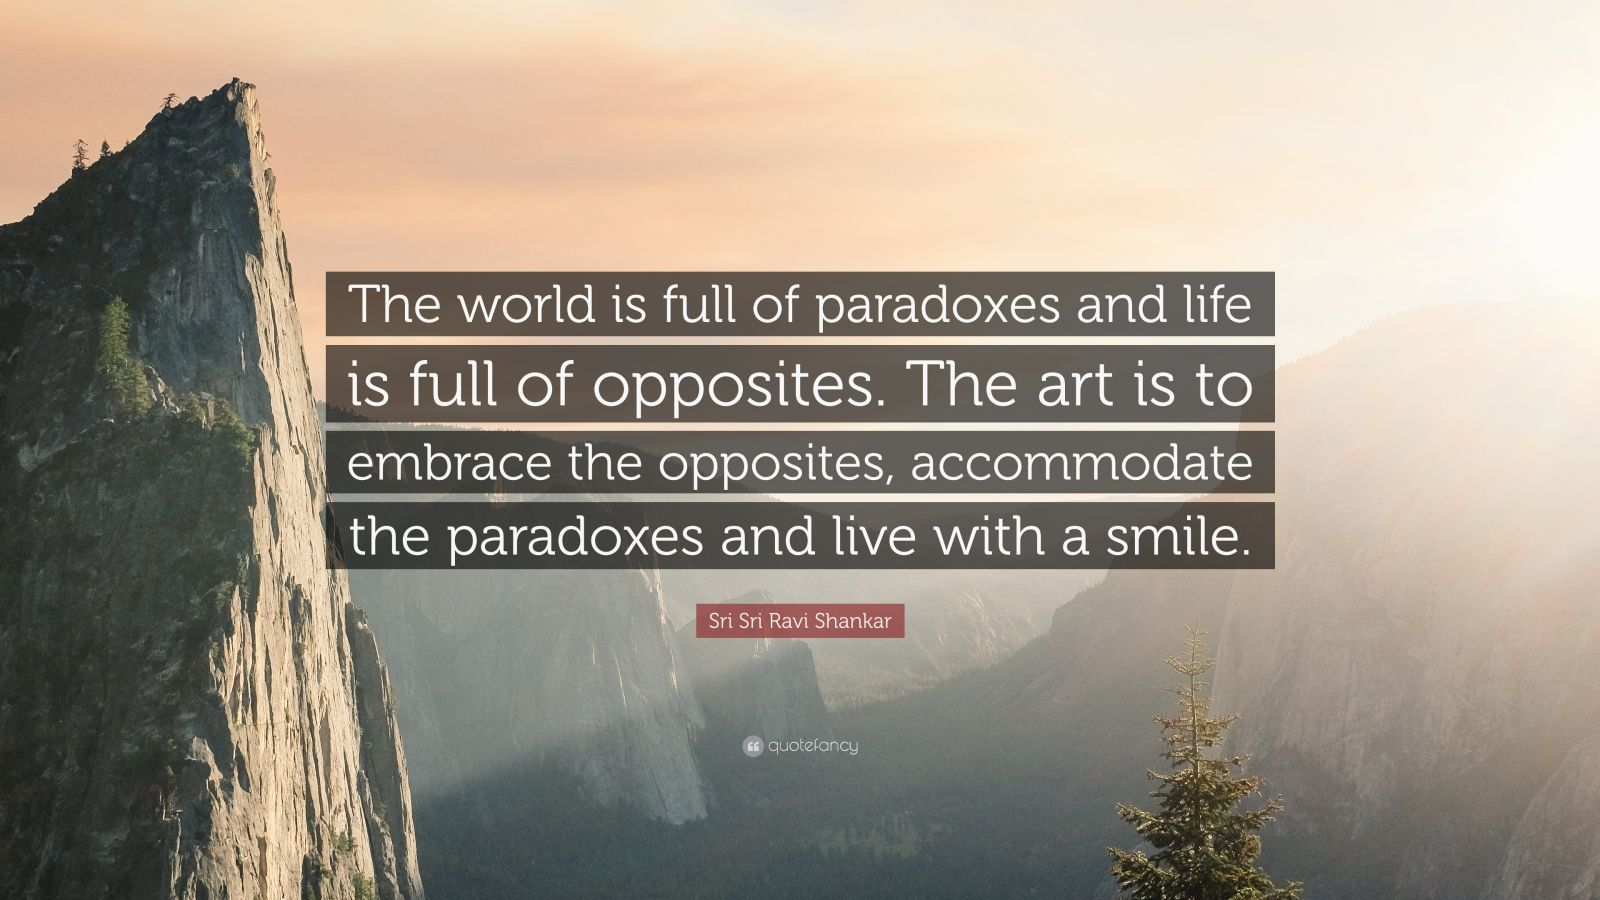 """Sri Sri Ravi Shankar Quote: """"The world is full of paradoxes and life is full of opposites. The art is to embrace the opposites, accommodate the paradoxes and live with a smile."""""""